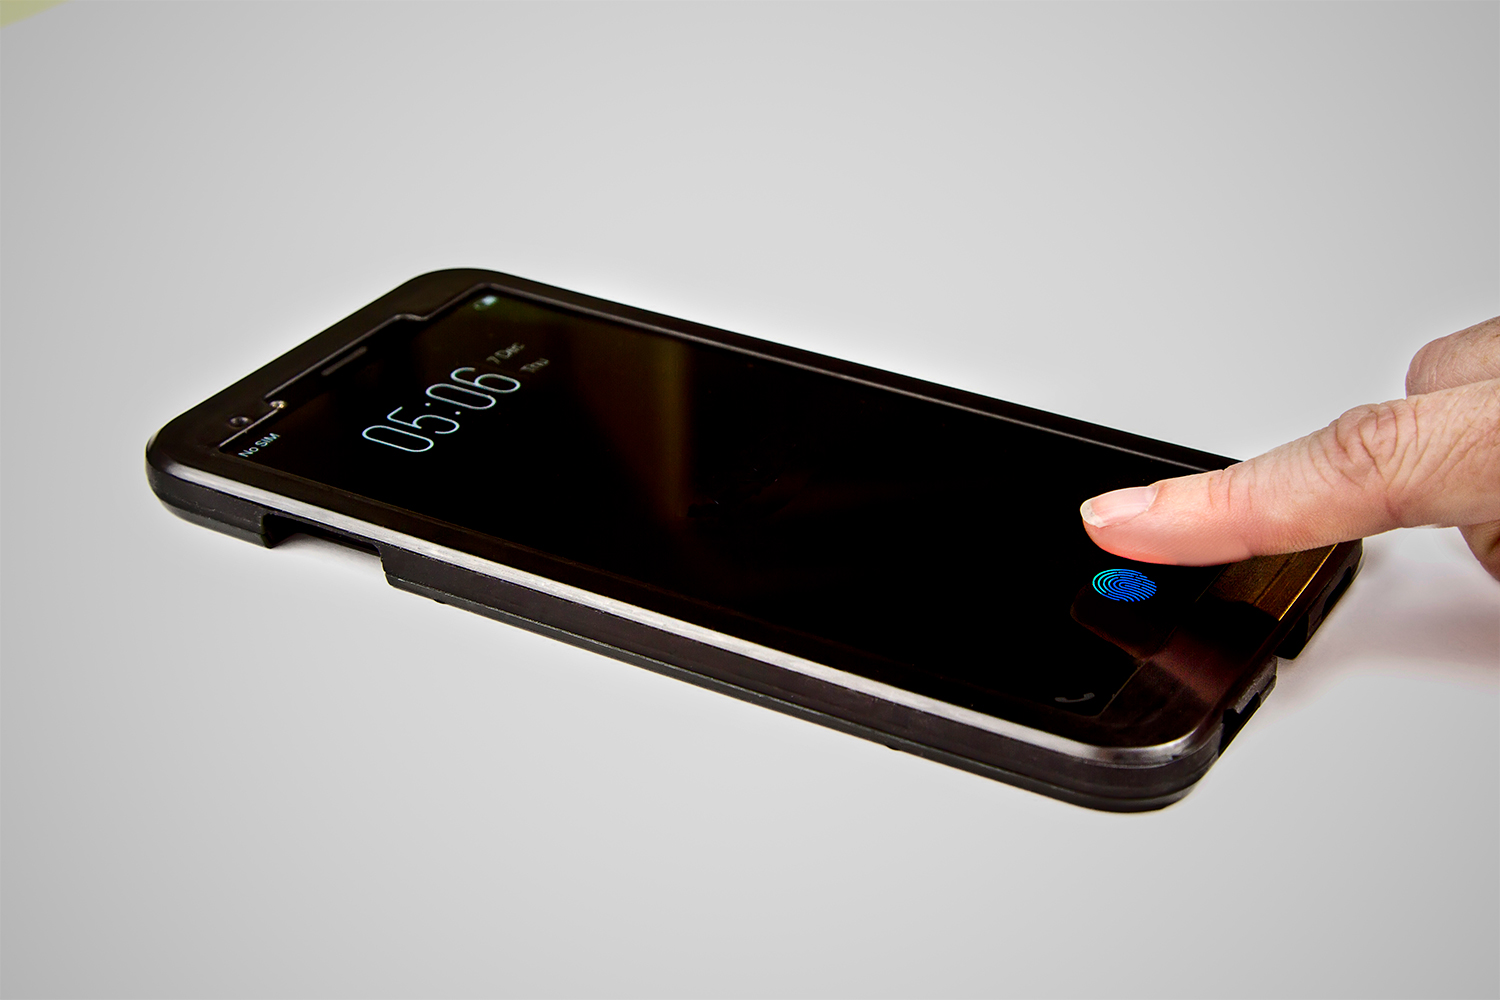 Display Fingerprint Sensor Soon To Be A Reality